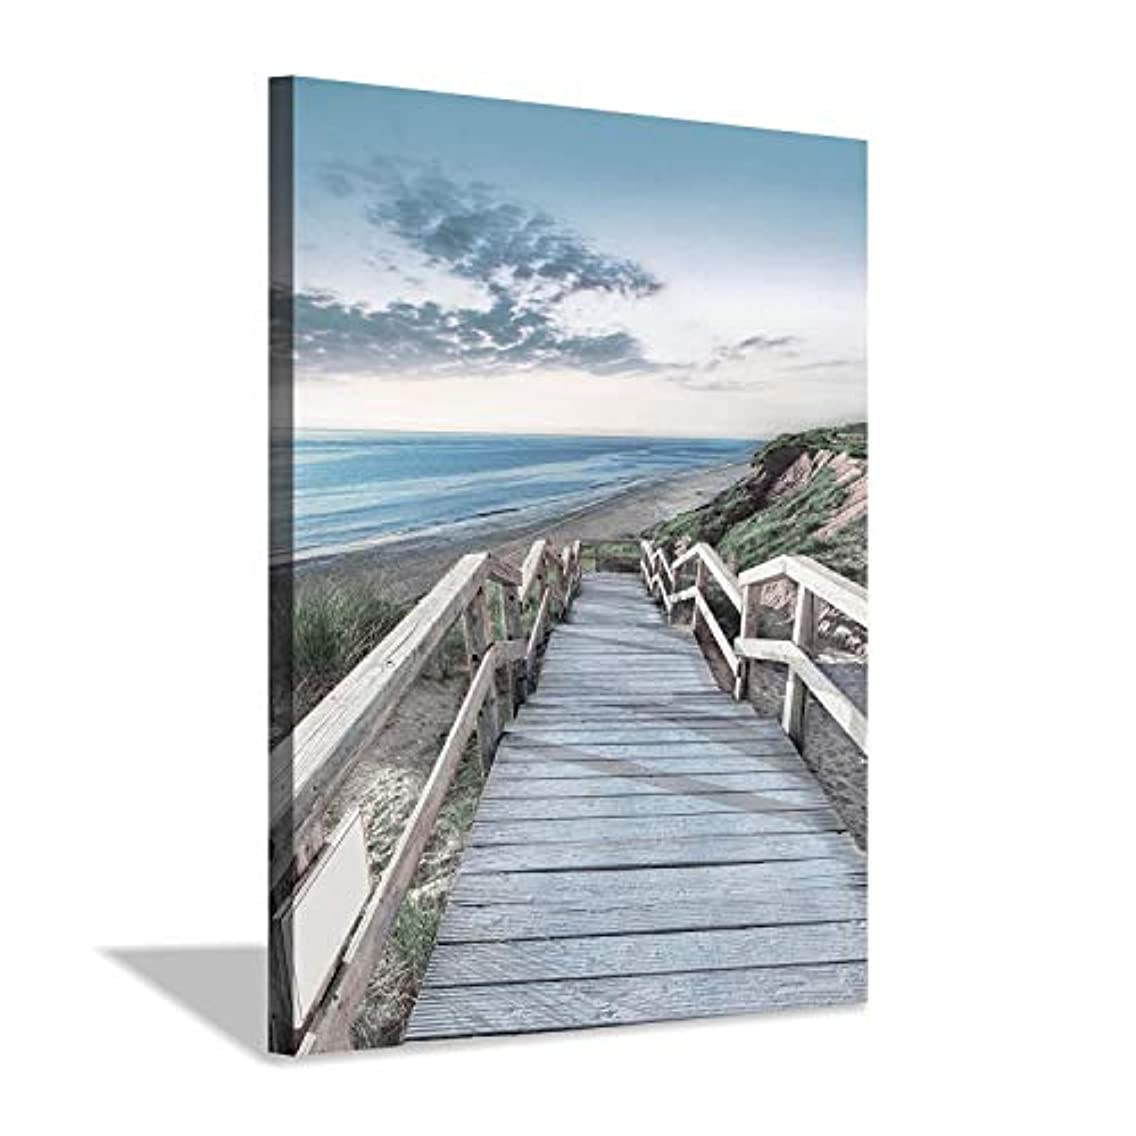 Beachside Wooden Path Wall Art: Bridge Boardwalk Stair Graphic Art on Wrapped Canvas for Wall Decor (12''x16'')